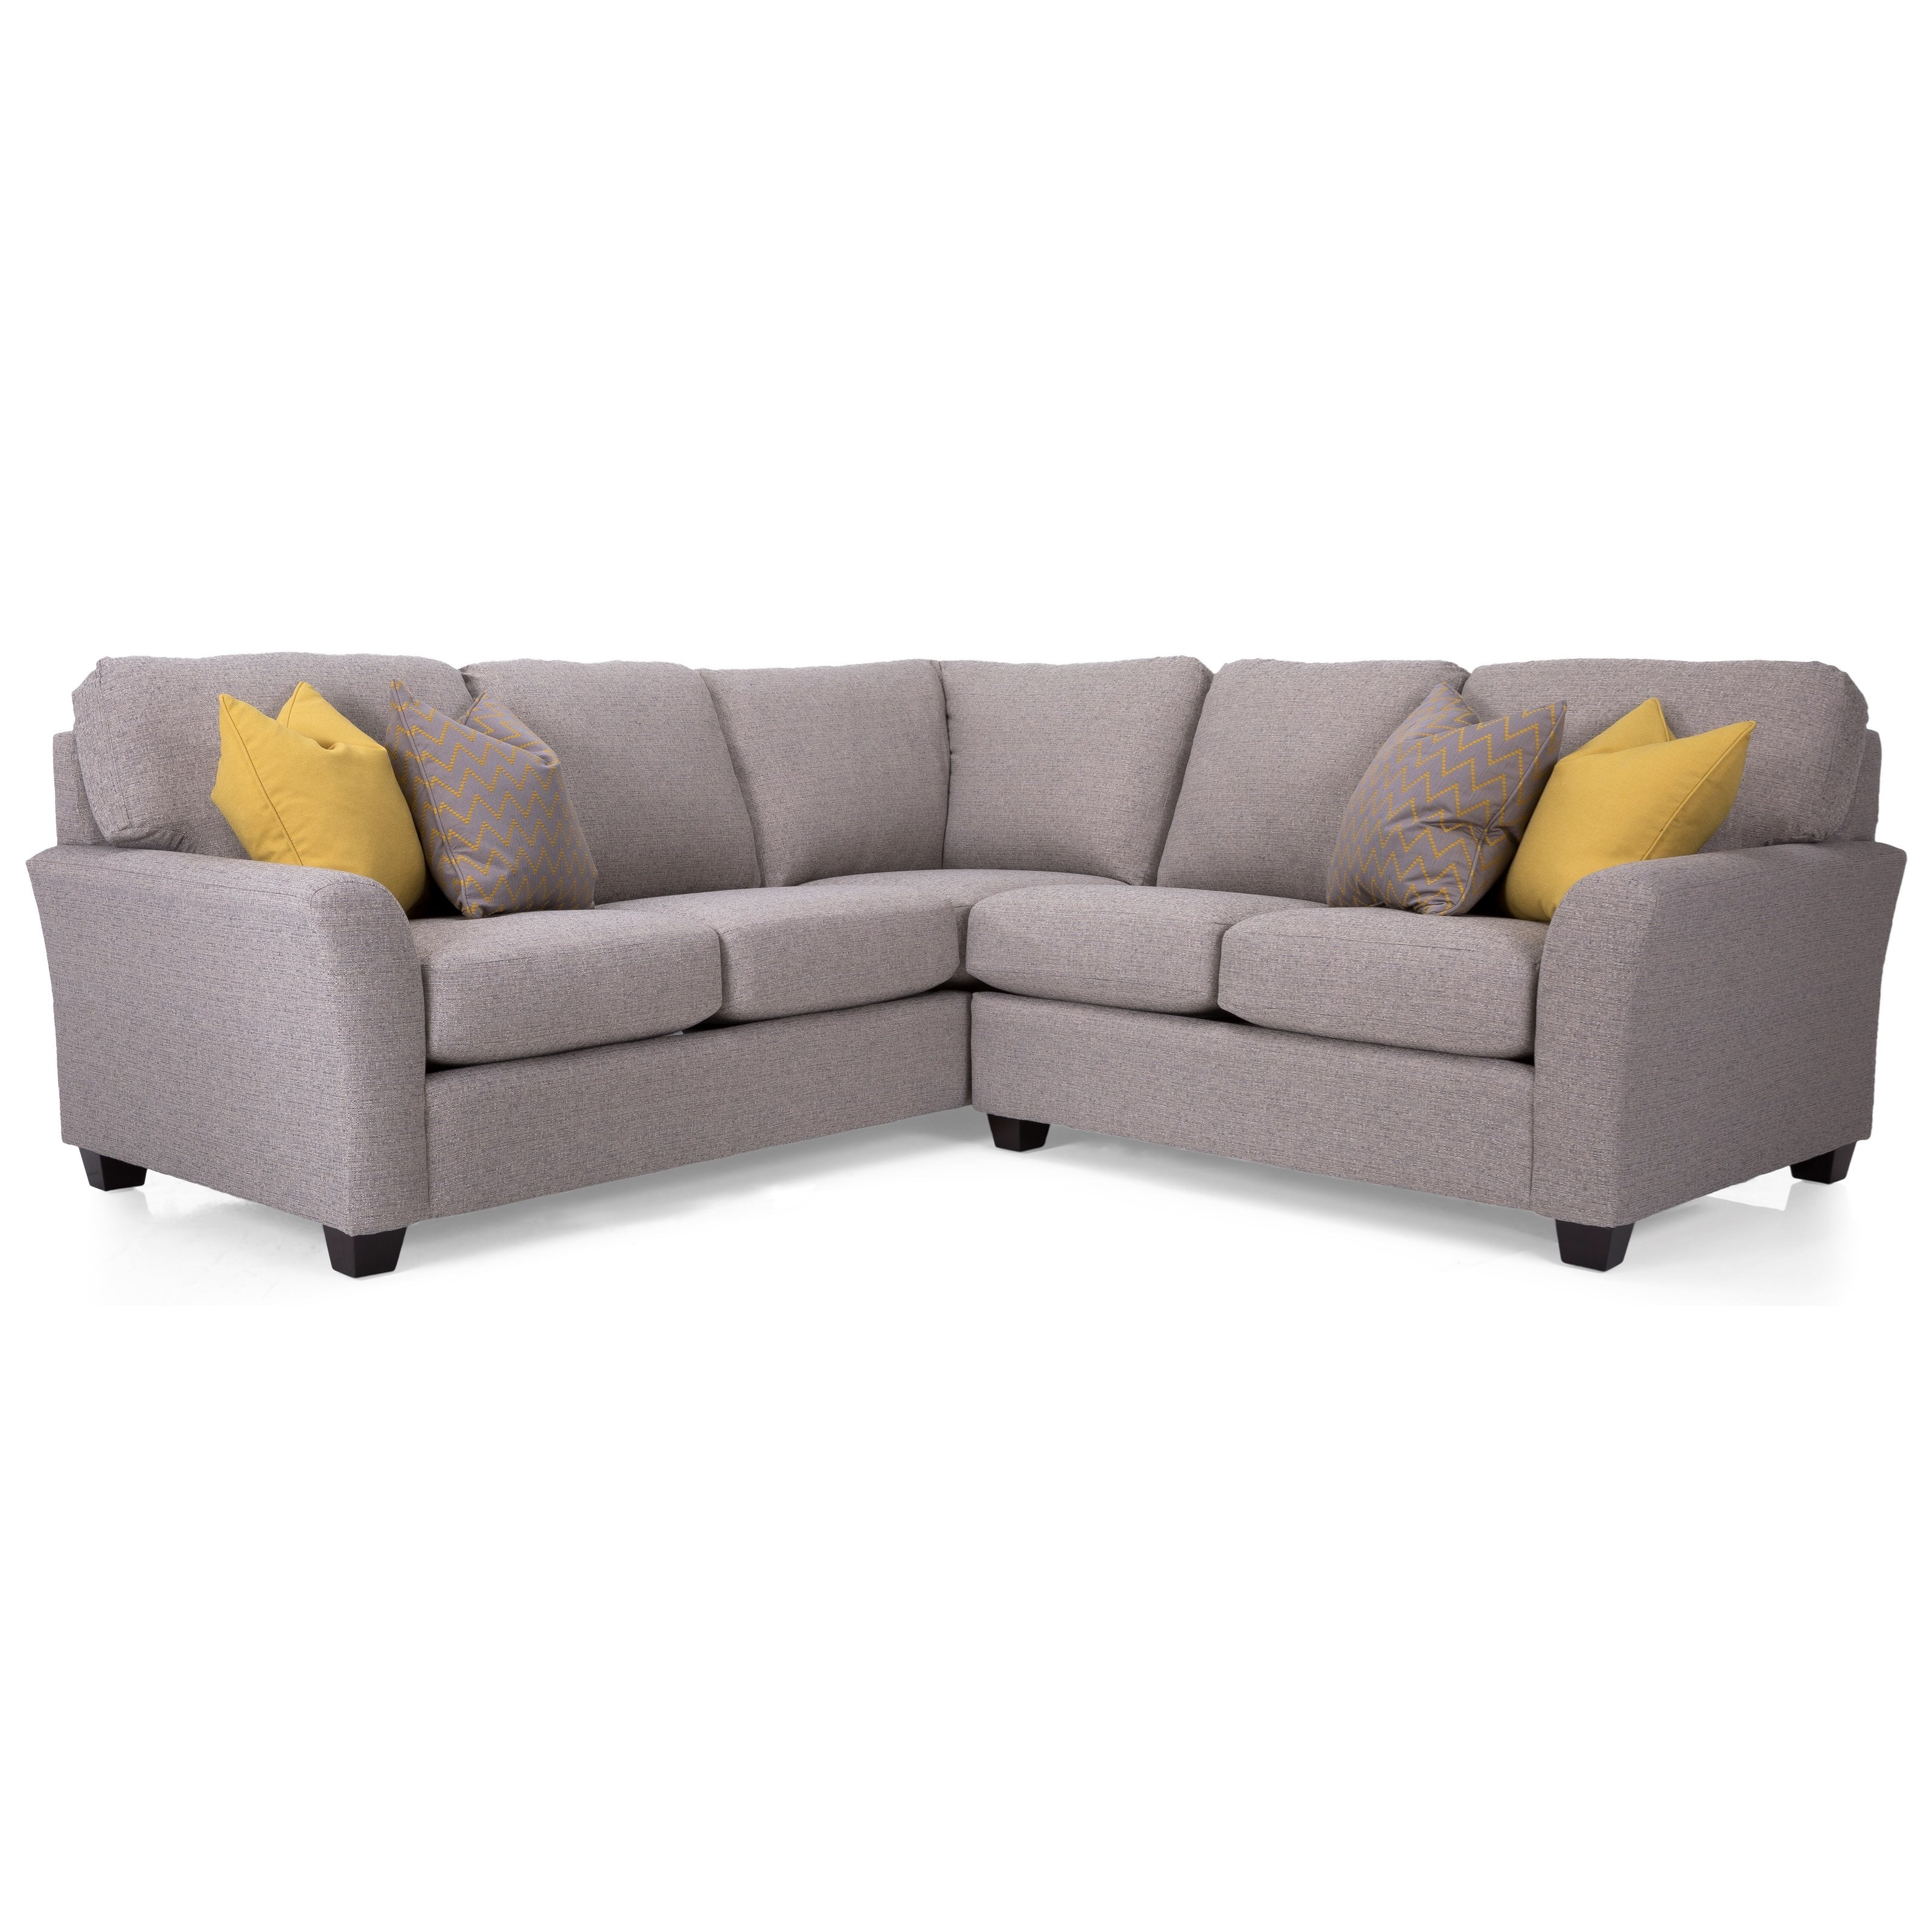 Alessandra Connections Sectional Sofa by Decor-Rest at Rooms for Less